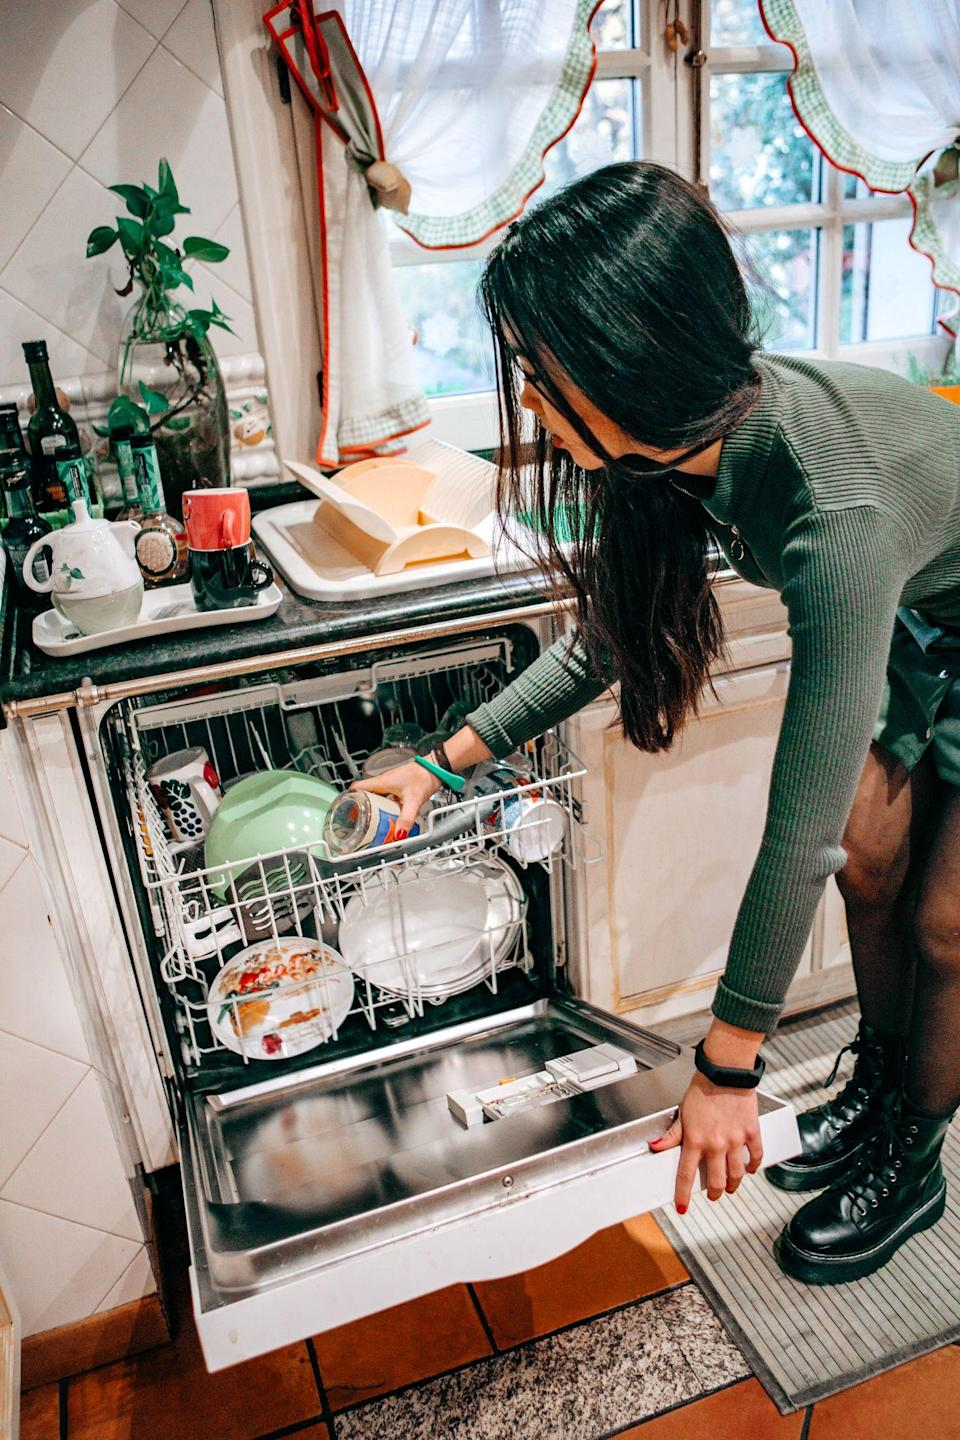 "<p>Have you ever taken your dishes out of the dishwasher and realized that they still looked dirty? Have no fear, you probably don't have to splurge on <a href=""https://www.delish.com/kitchen-tools/cookware-reviews/g4087/bep-best-dishwasher-reviews/"" rel=""nofollow noopener"" target=""_blank"" data-ylk=""slk:a new dishwasher"" class=""link rapid-noclick-resp"">a new dishwasher</a> just yet. You see, <a href=""https://www.delish.com/kitchen-tools/kitchen-secrets/g2881/things-you-should-never-put-in-the-dishwasher/"" rel=""nofollow noopener"" target=""_blank"" data-ylk=""slk:dishwasher maintenance"" class=""link rapid-noclick-resp"">dishwasher maintenance</a> is an important part of keeping your dishwasher working at its highest capabilities—and preventing it from getting that musty, food-gone-bad smell. While you may not have washed your dishwasher before, it's never to late to start. Plus, these cleaning tips are so easy—your dishwasher does all of the hard work for you, we promise. For spotless dishes and an odor-free kitchen, here's everything you need to know about cleaning your dishwasher.</p>"